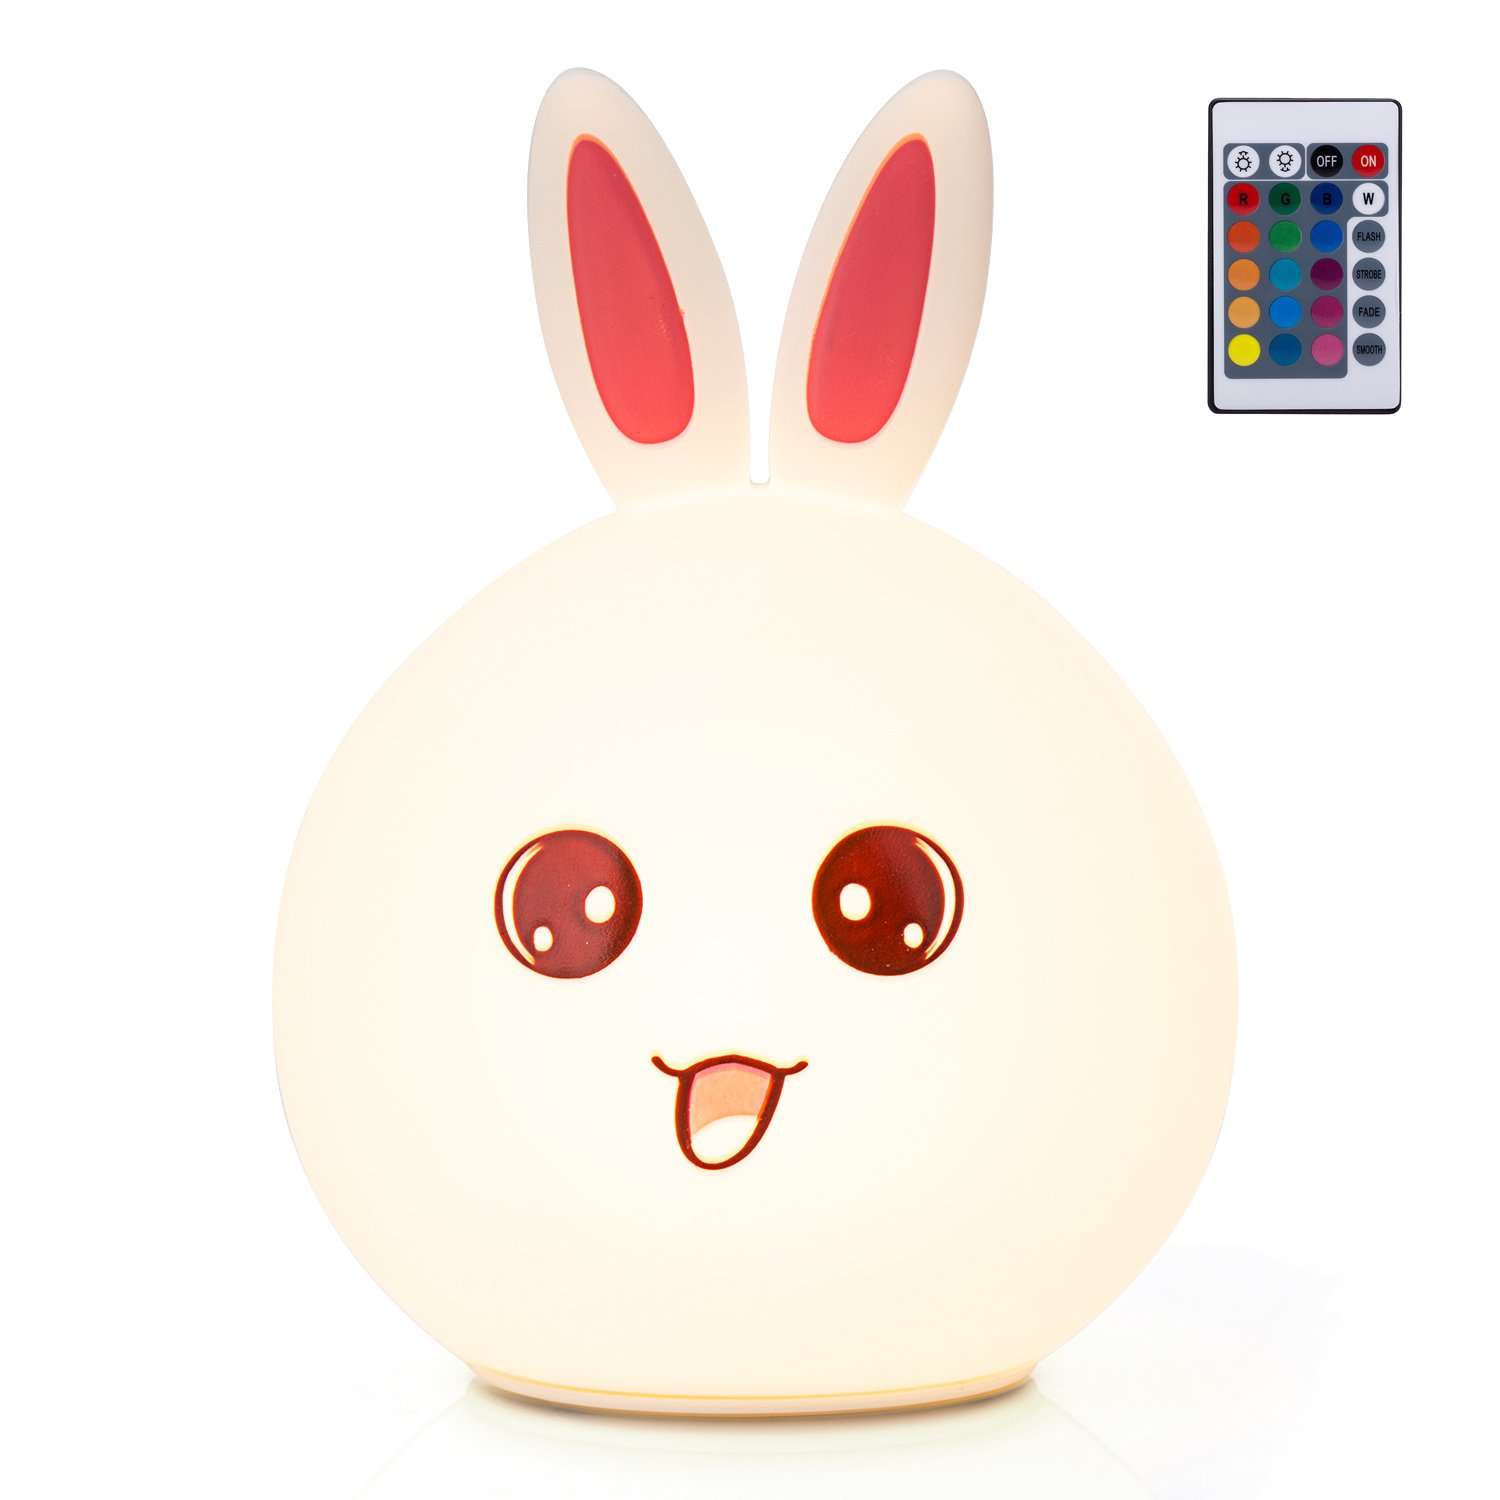 BabyProducts Tap+Remote Control GL-NL012-PK B06XGVM39B 14709 Tap+Remote Control|Pink Ears Pink Ears Tap+Remote Control